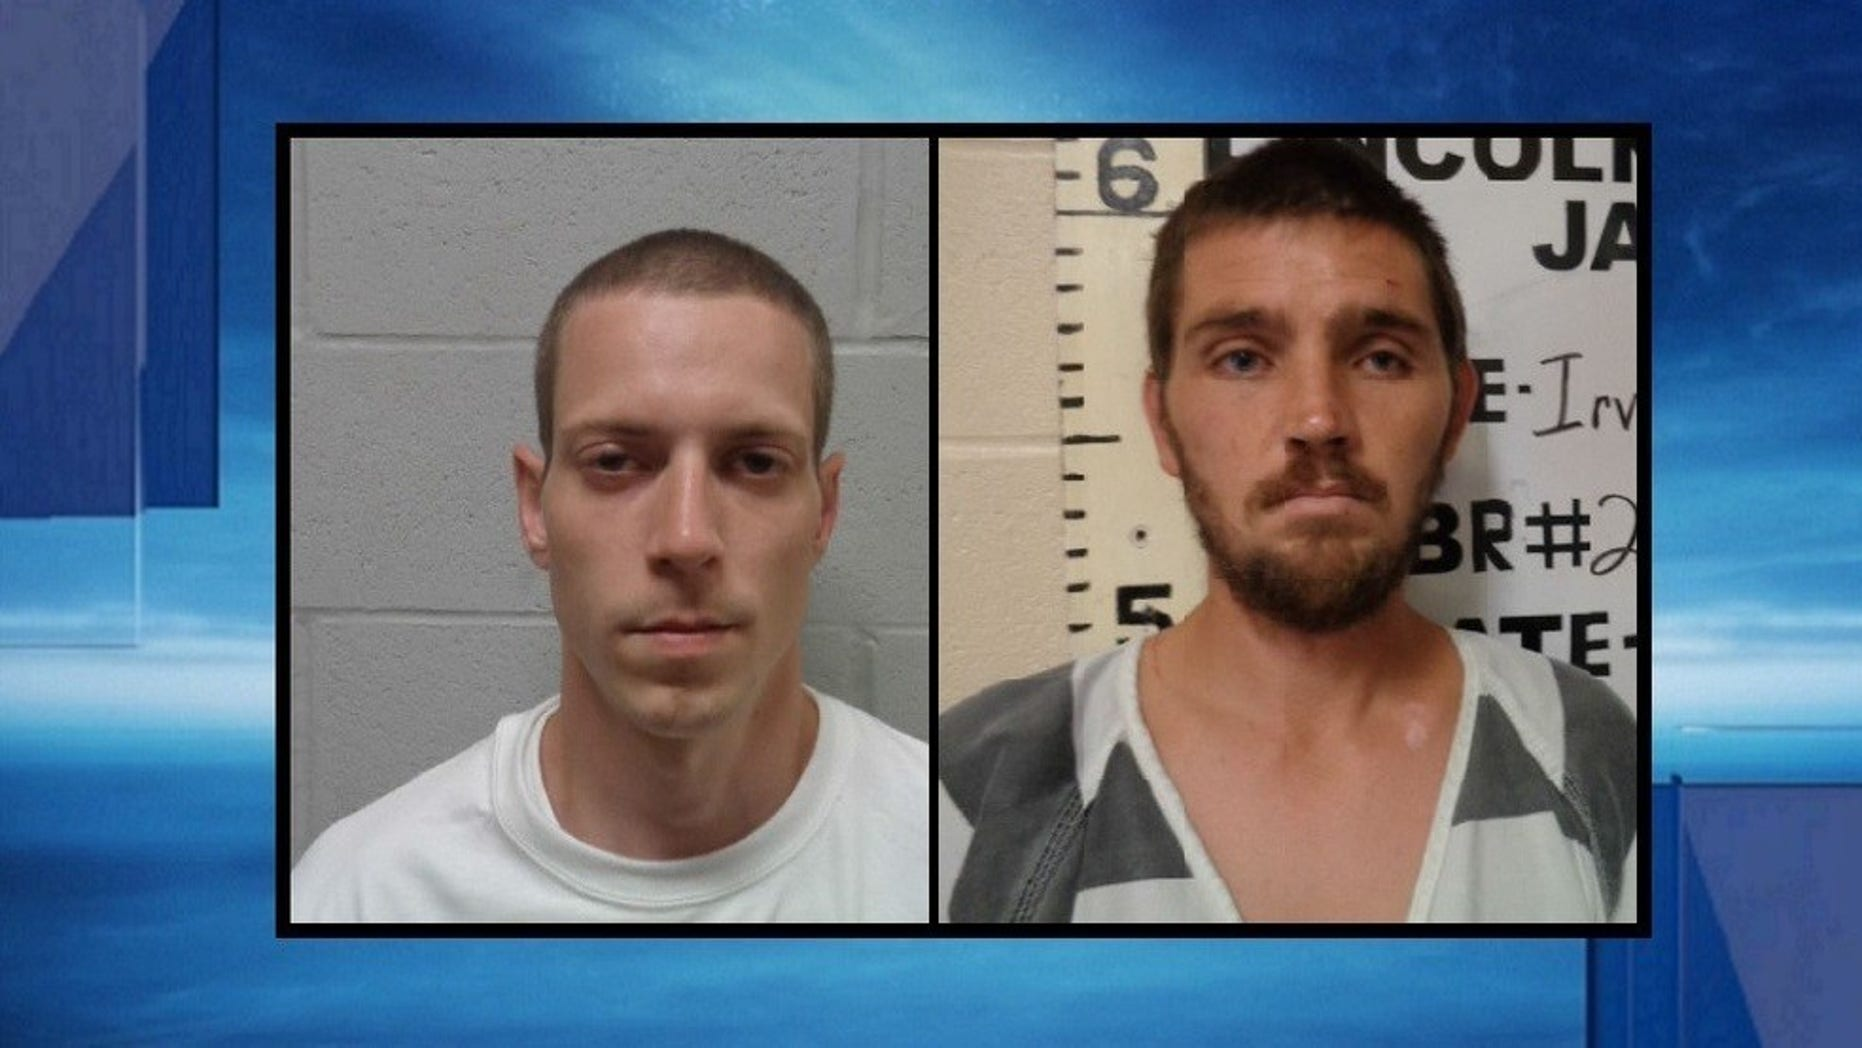 Pottawatomie County Sheriffs confirmed they have 2 Oklahoma jail escapees in custody, Trey Glenn Goodnight, 27 (right) and Jeremy Tyson Irvin, 31 (left).